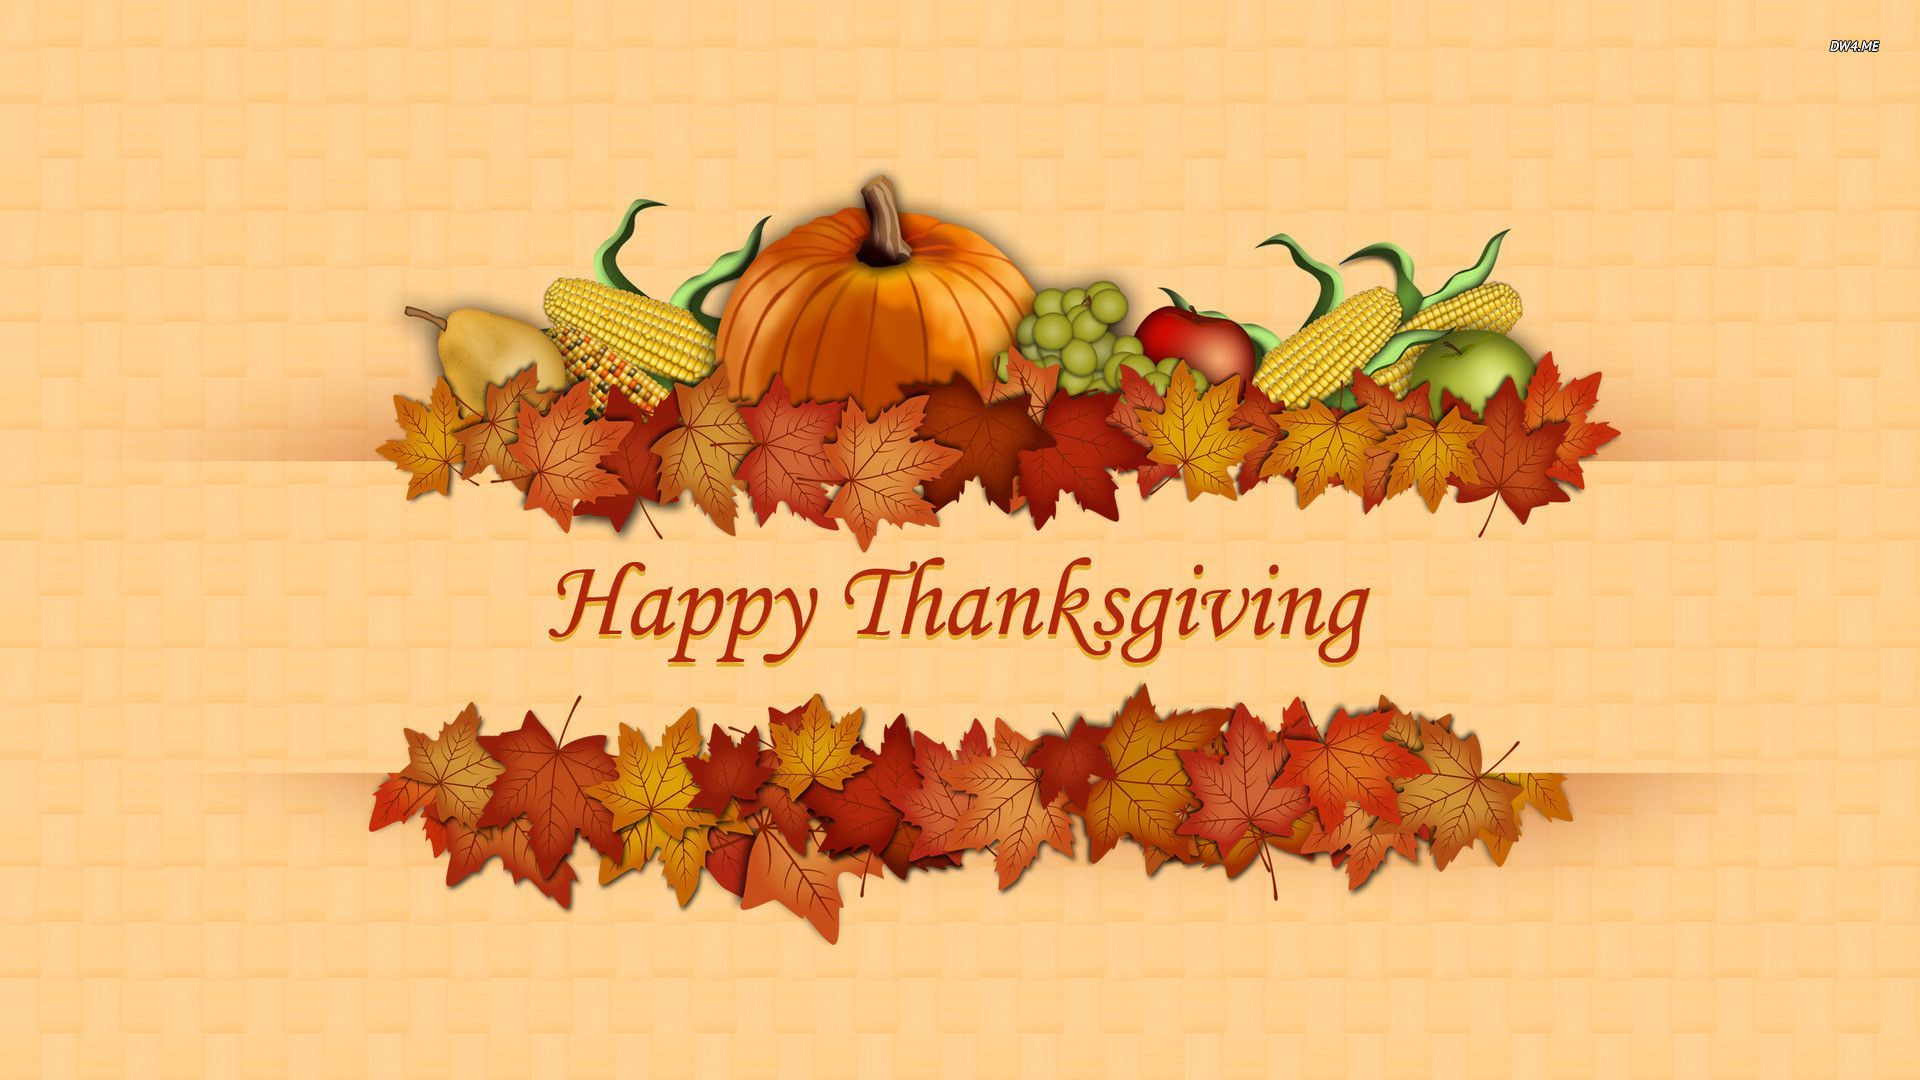 thanksgiving desktop wallpapers backgrounds   SF Wallpaper 1920x1080